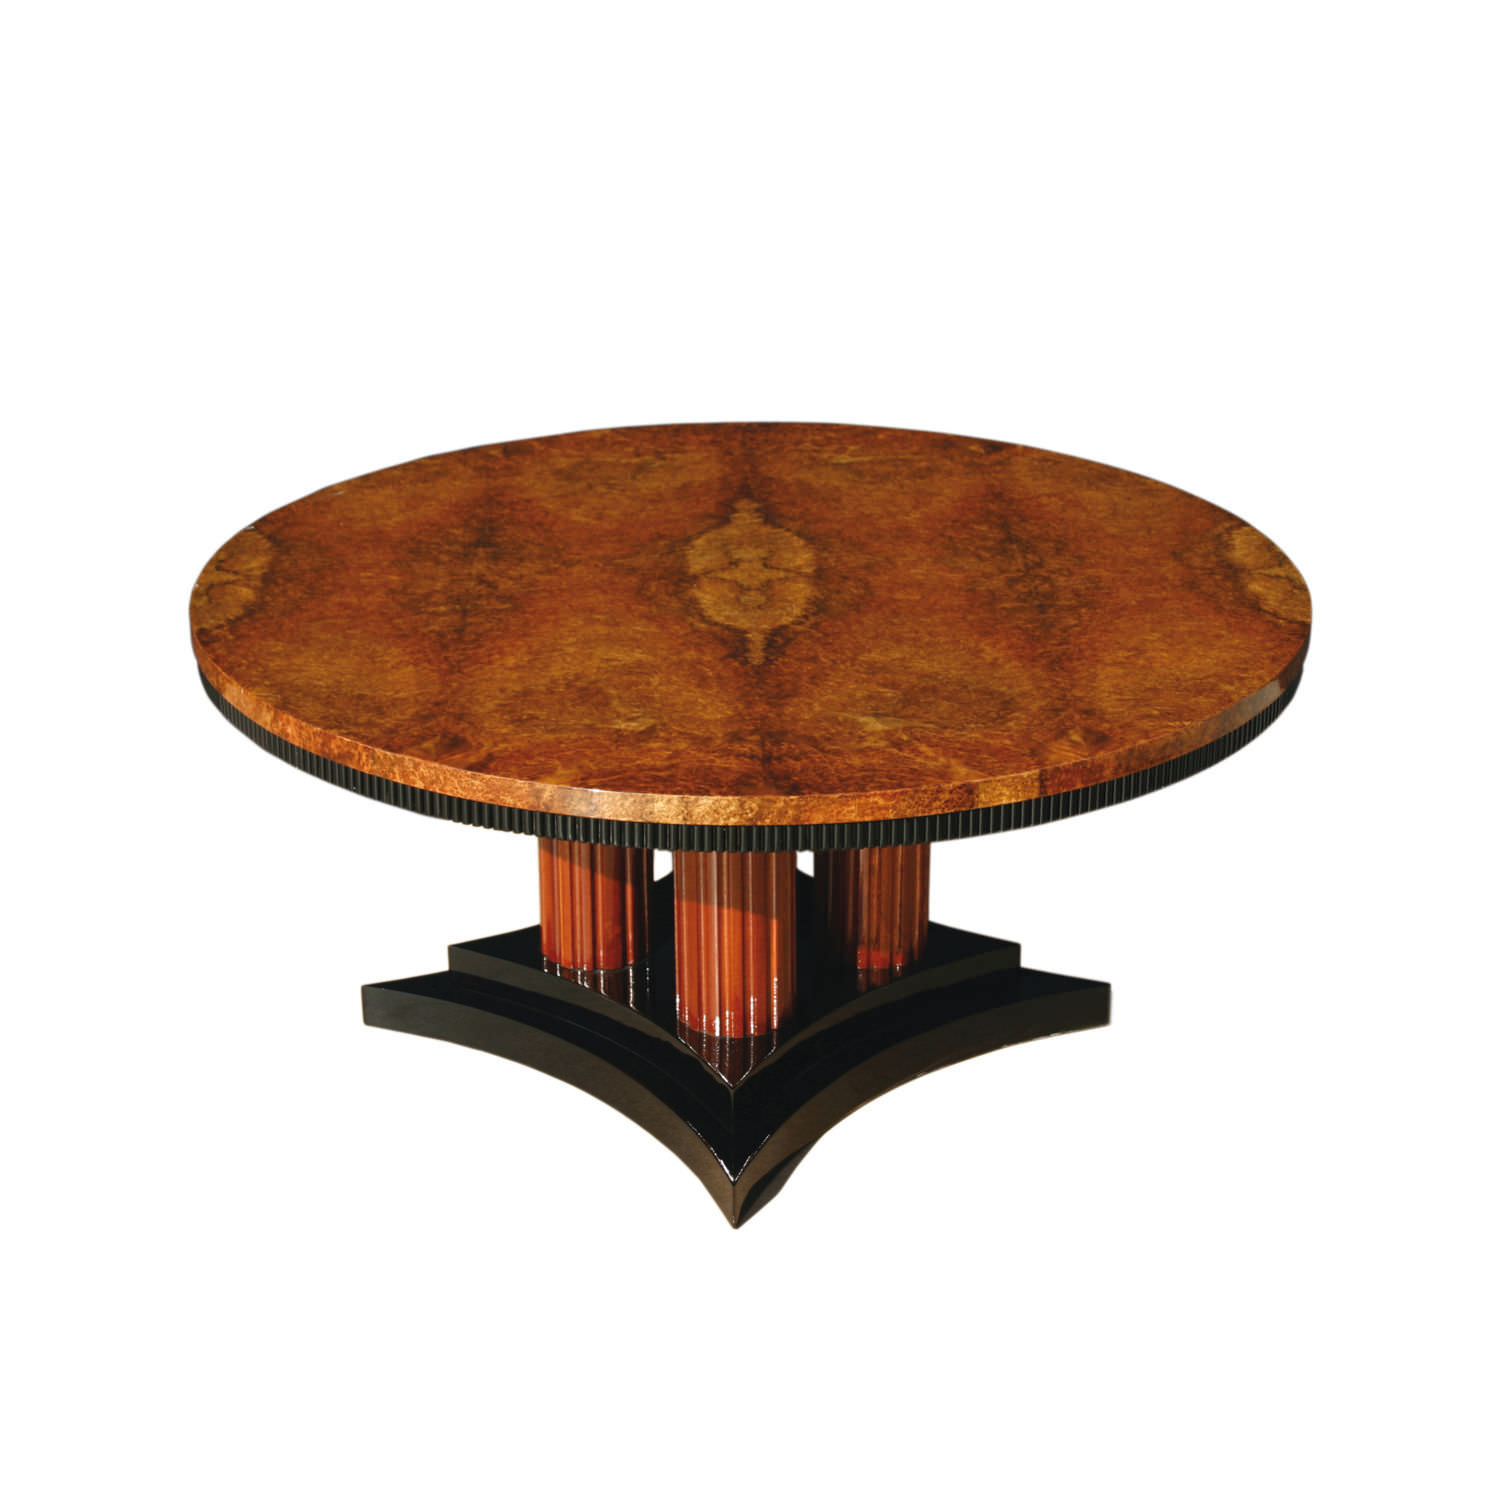 Art Deco Coffee Table Wooden Glossy Varnished Wood Round Ct004